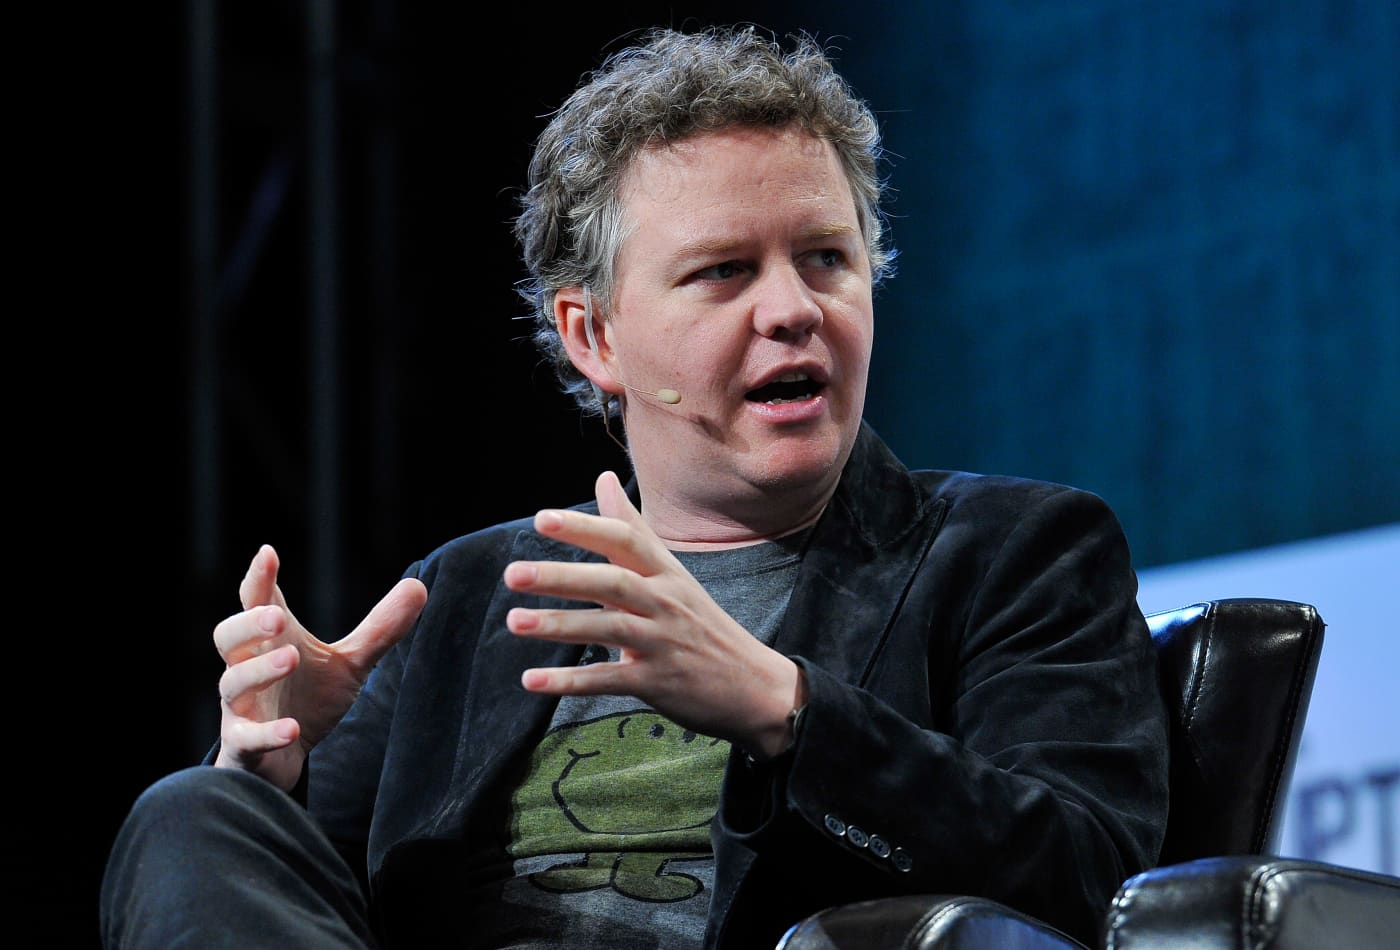 Cloudflare seeing uptick in cyber incidents as hackers try 'unleashing everything,' CEO says